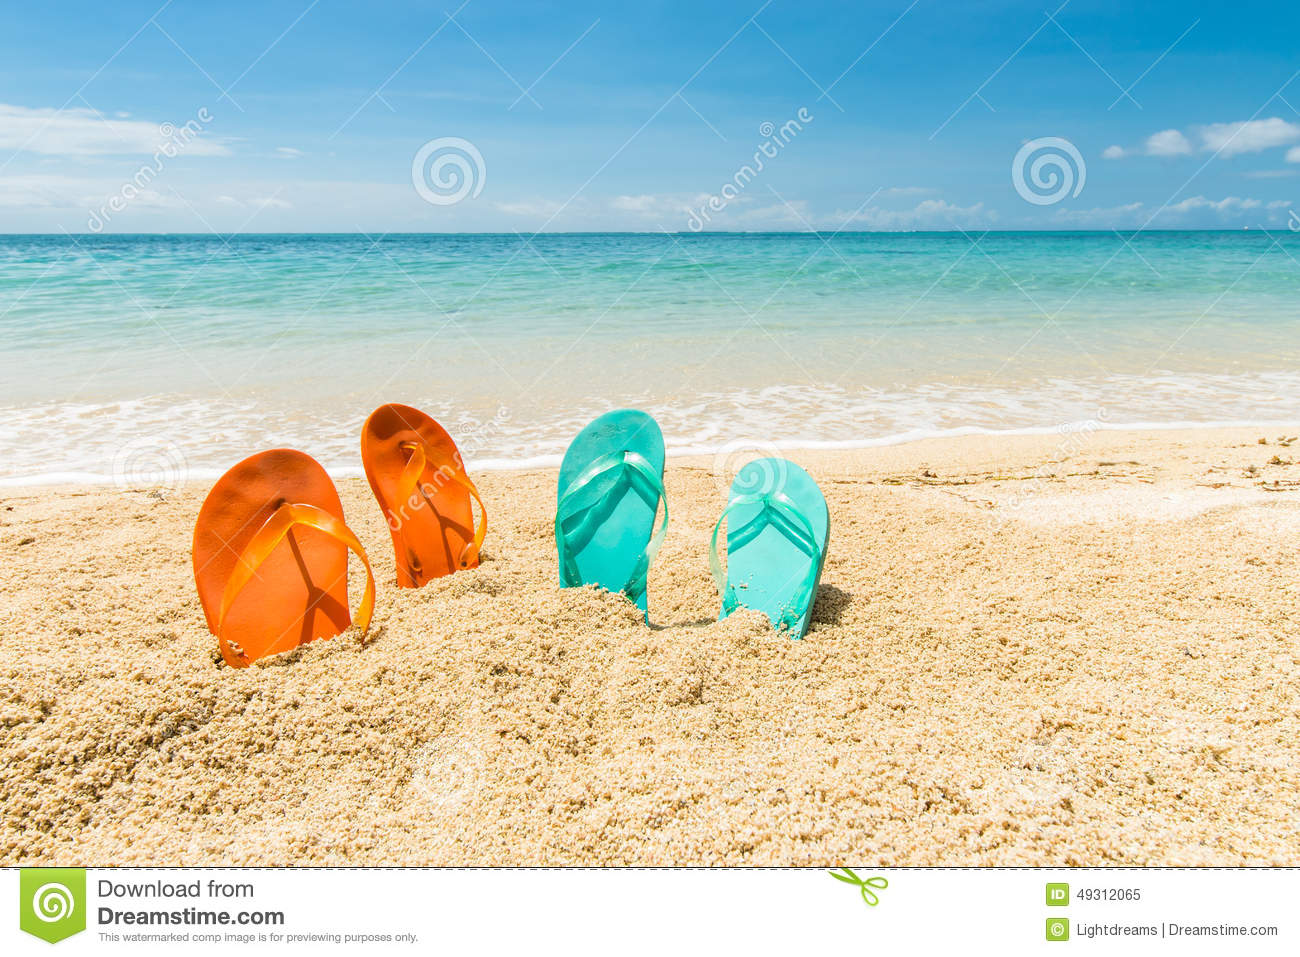 d52e736f2 Four flip-flops. Travel background with two pair of orange and green flip-